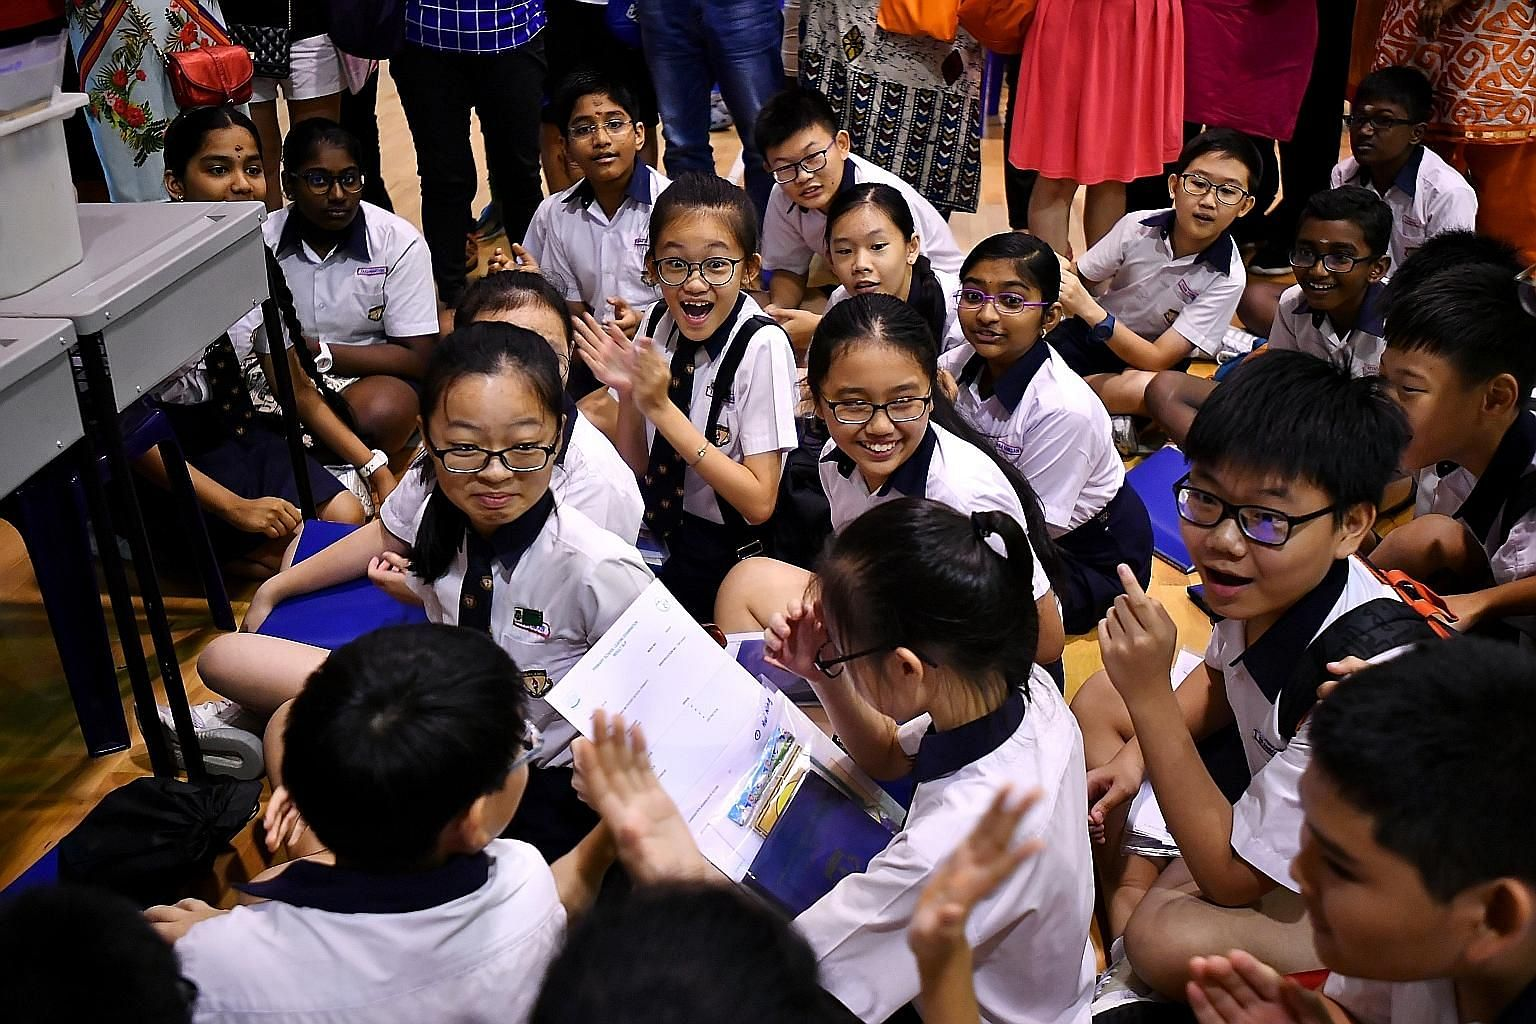 Pupils reacting to the release of their Primary School Leaving Examination results at Geylang Methodist School (Primary) last year. Assessment is a key feature of education systems, says the writer, and we can lessen the anxiety and stress related to